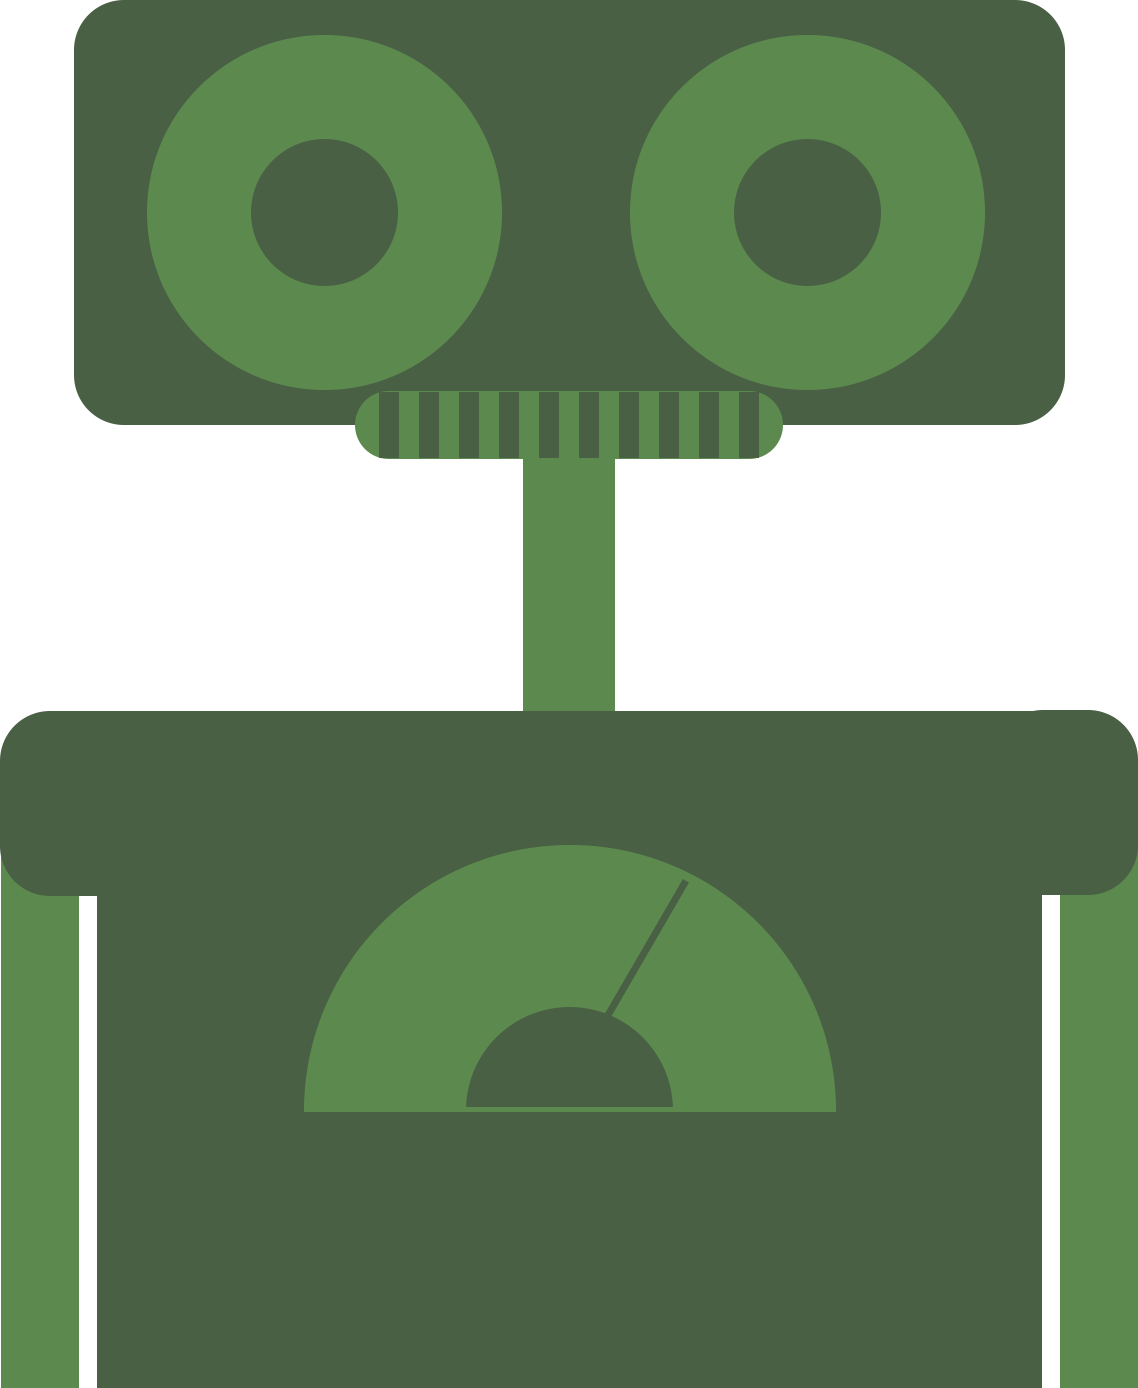 Bitty the Robot